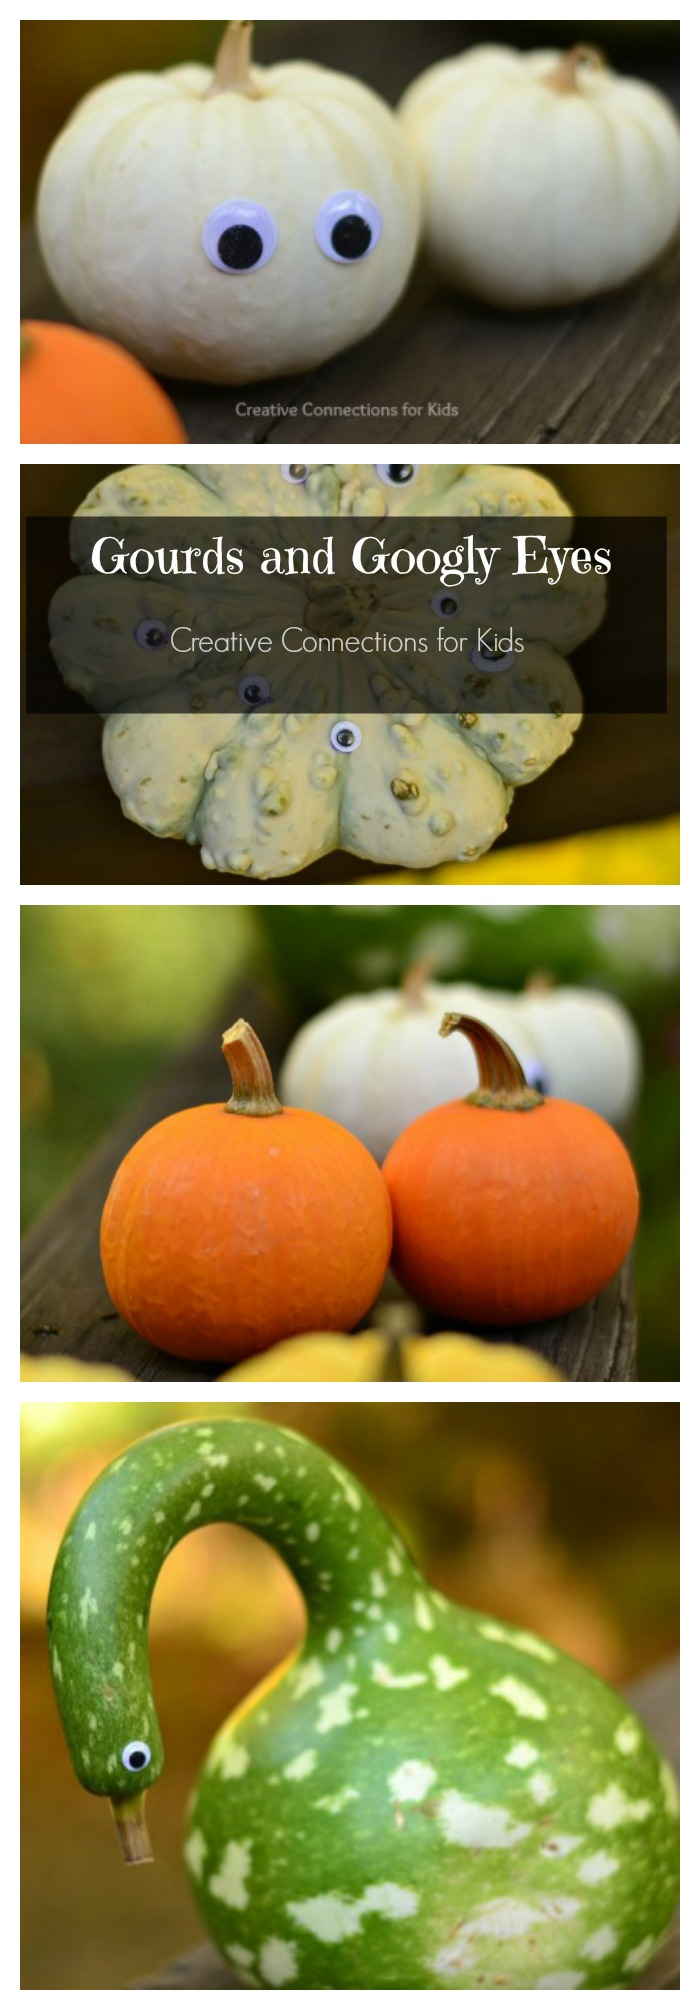 gourds-and-googly-eyes-the-easiest-way-to-decorate-your-gourds-and-mini-pumpkins-for-fall